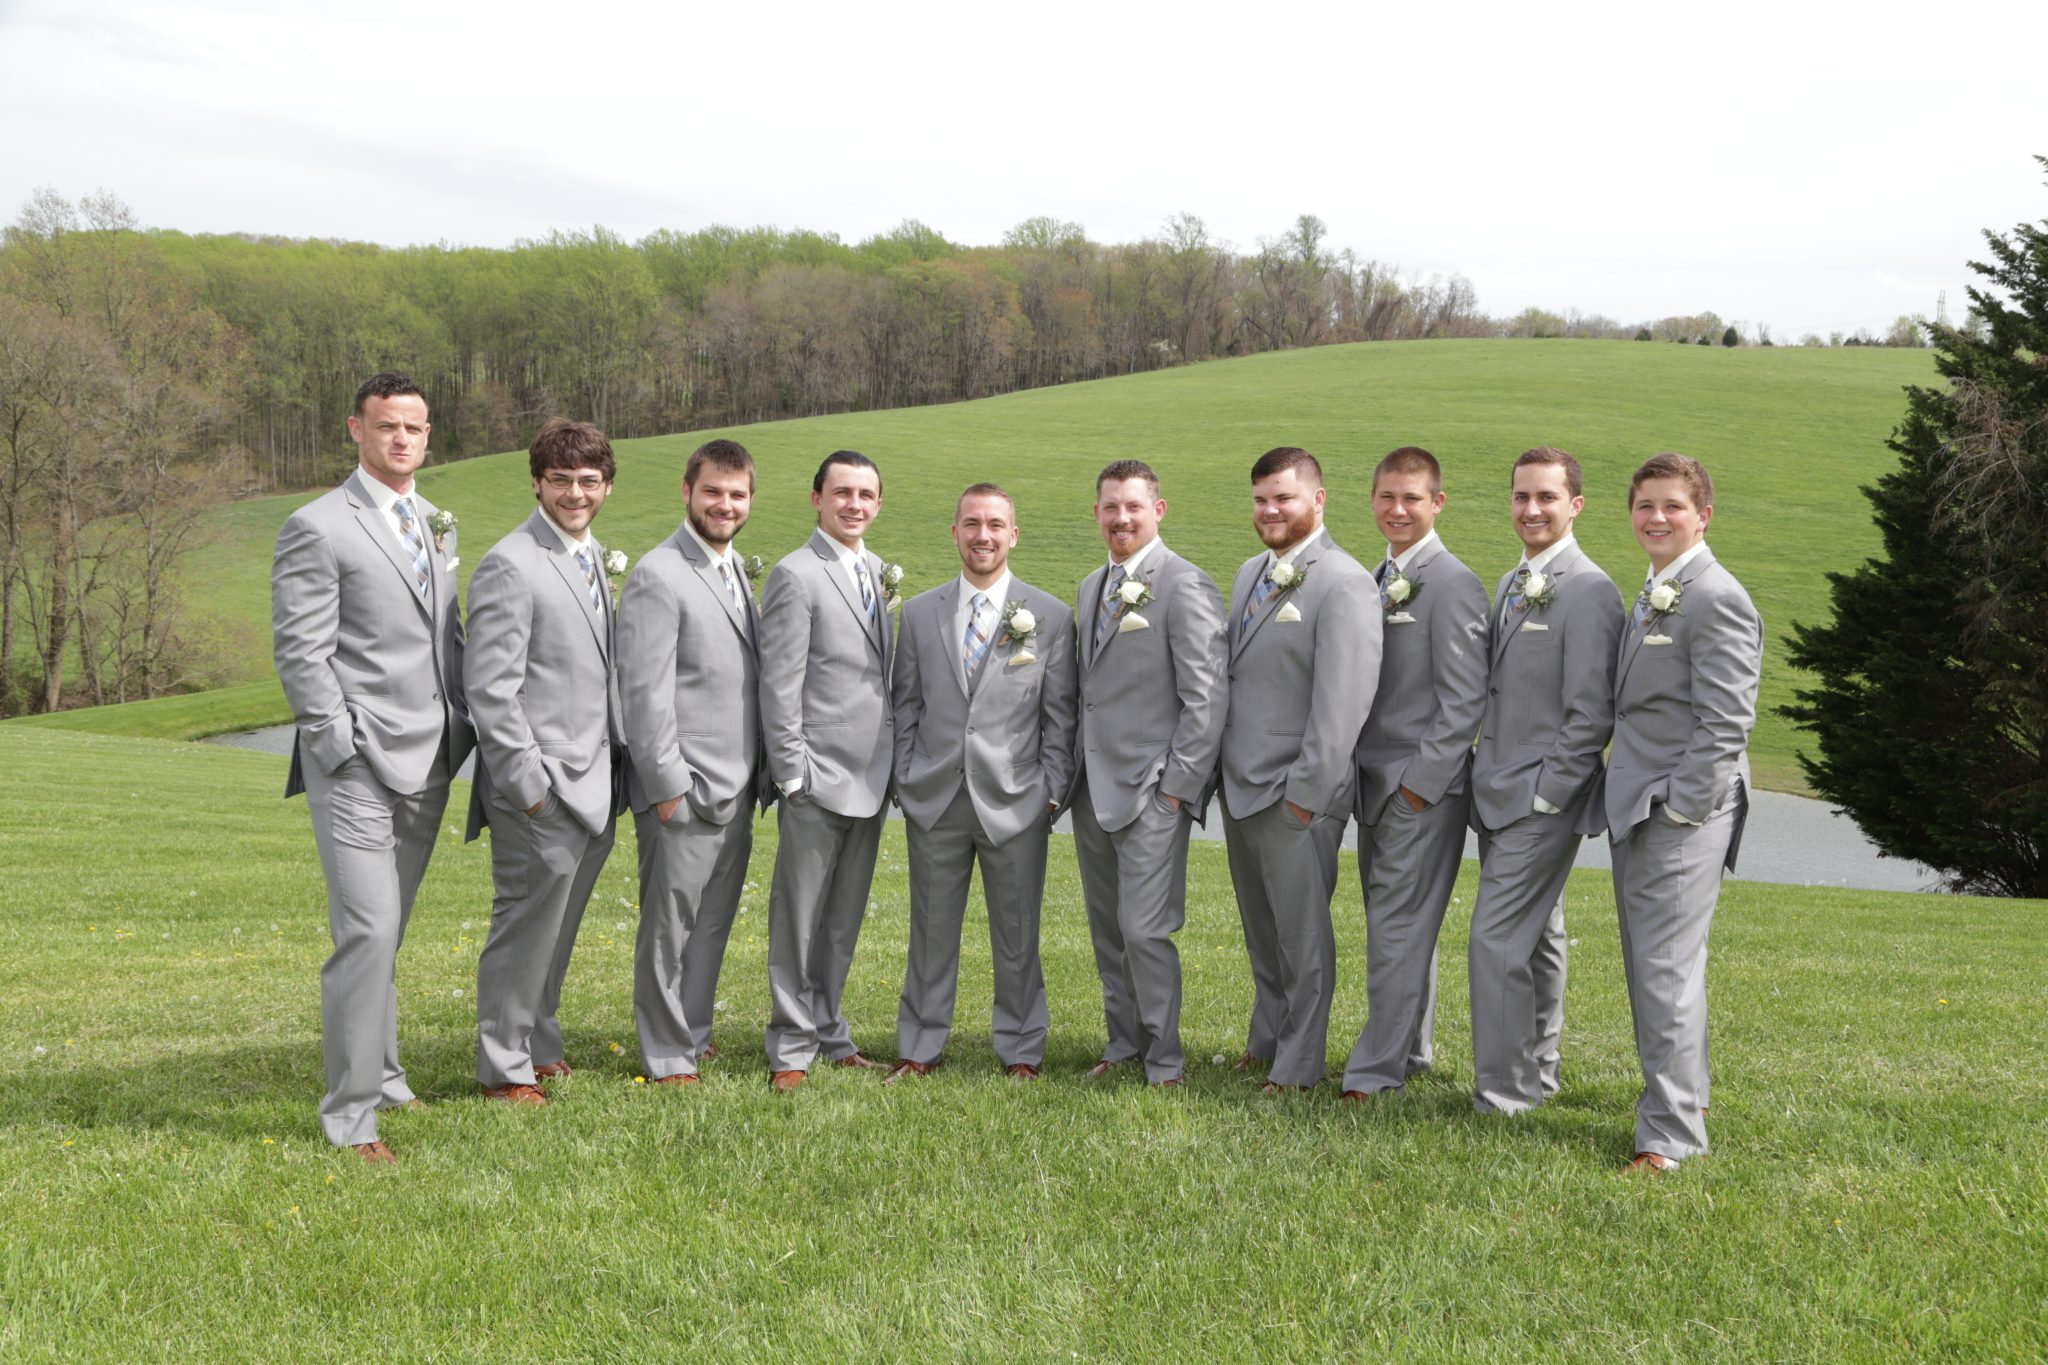 Groomsmen posed for photos on back lawn